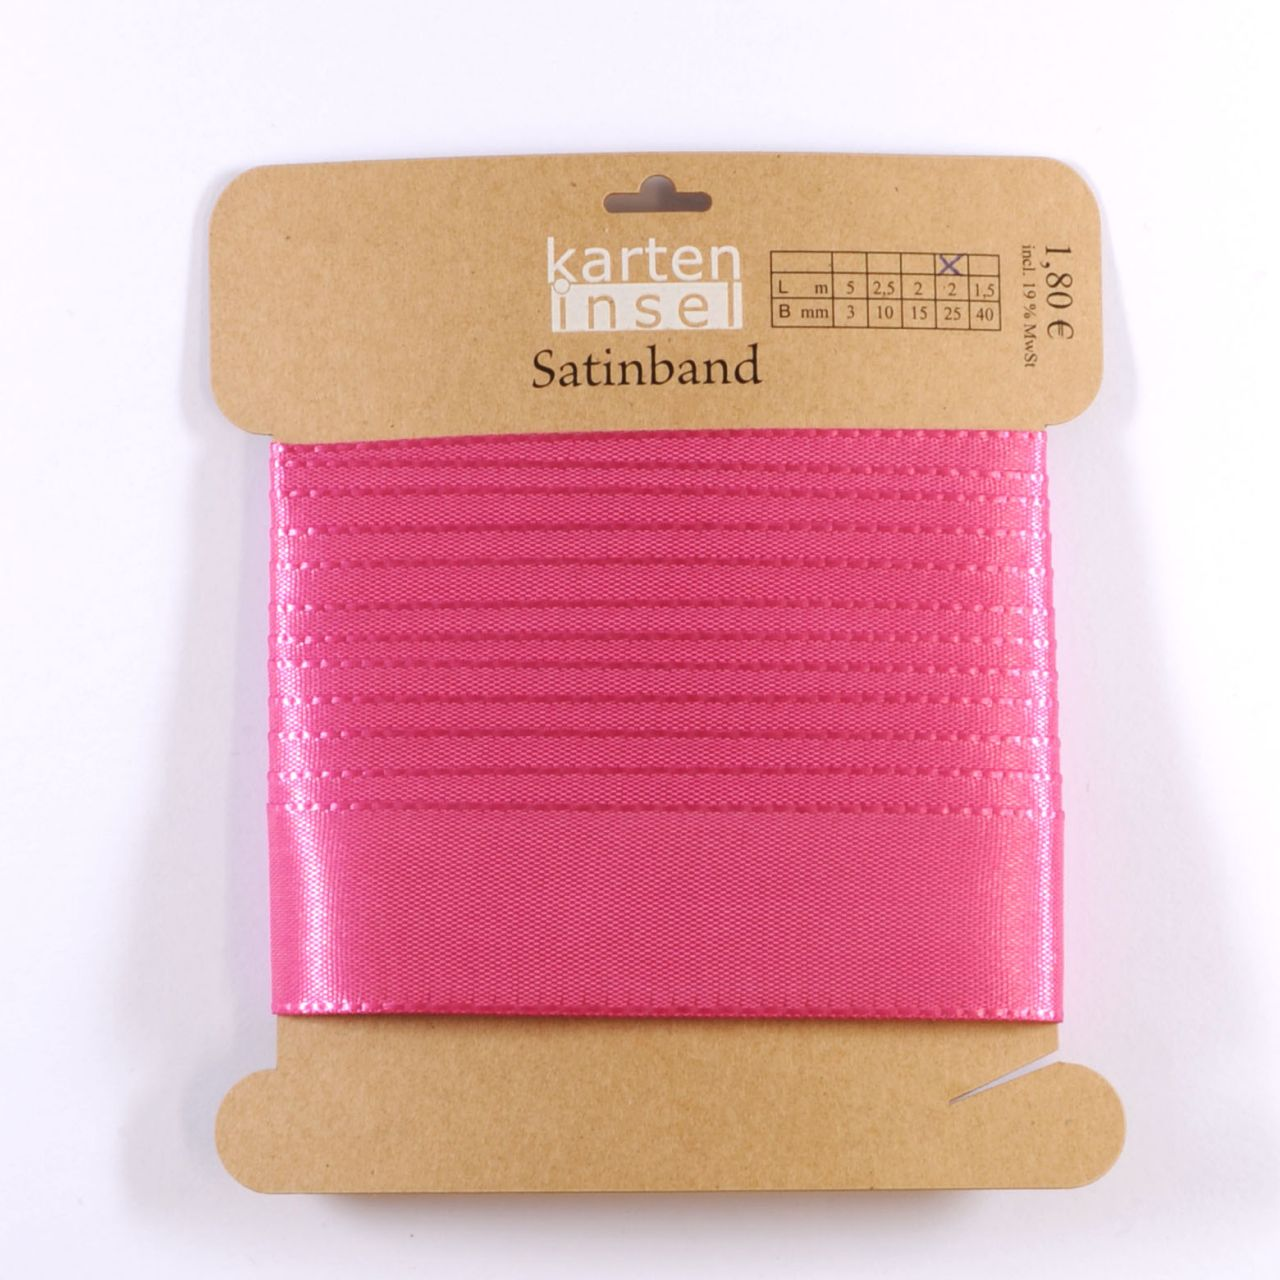 Satinband pink - 25 mm - 2 m